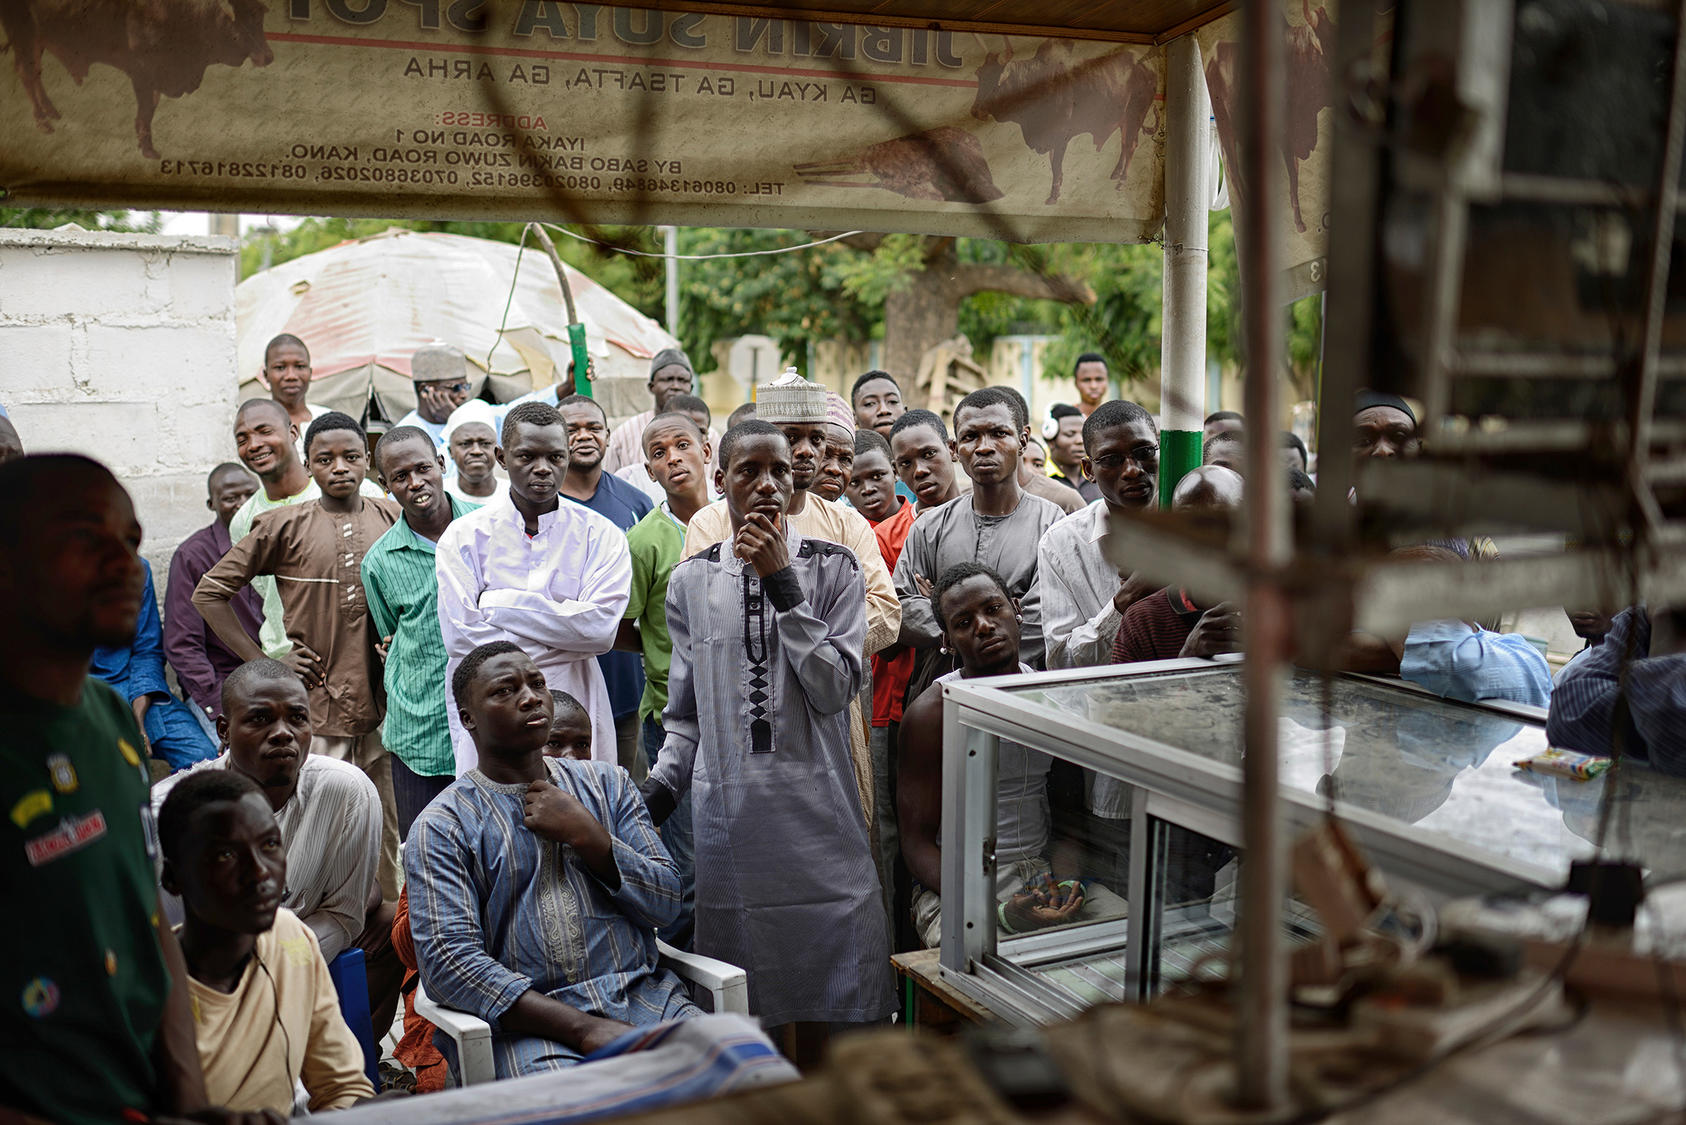 People gather and watch election coverage at a small market in Kano, northern Nigeria, March 31, 2015. (Samuel Aranda/The New York Times)